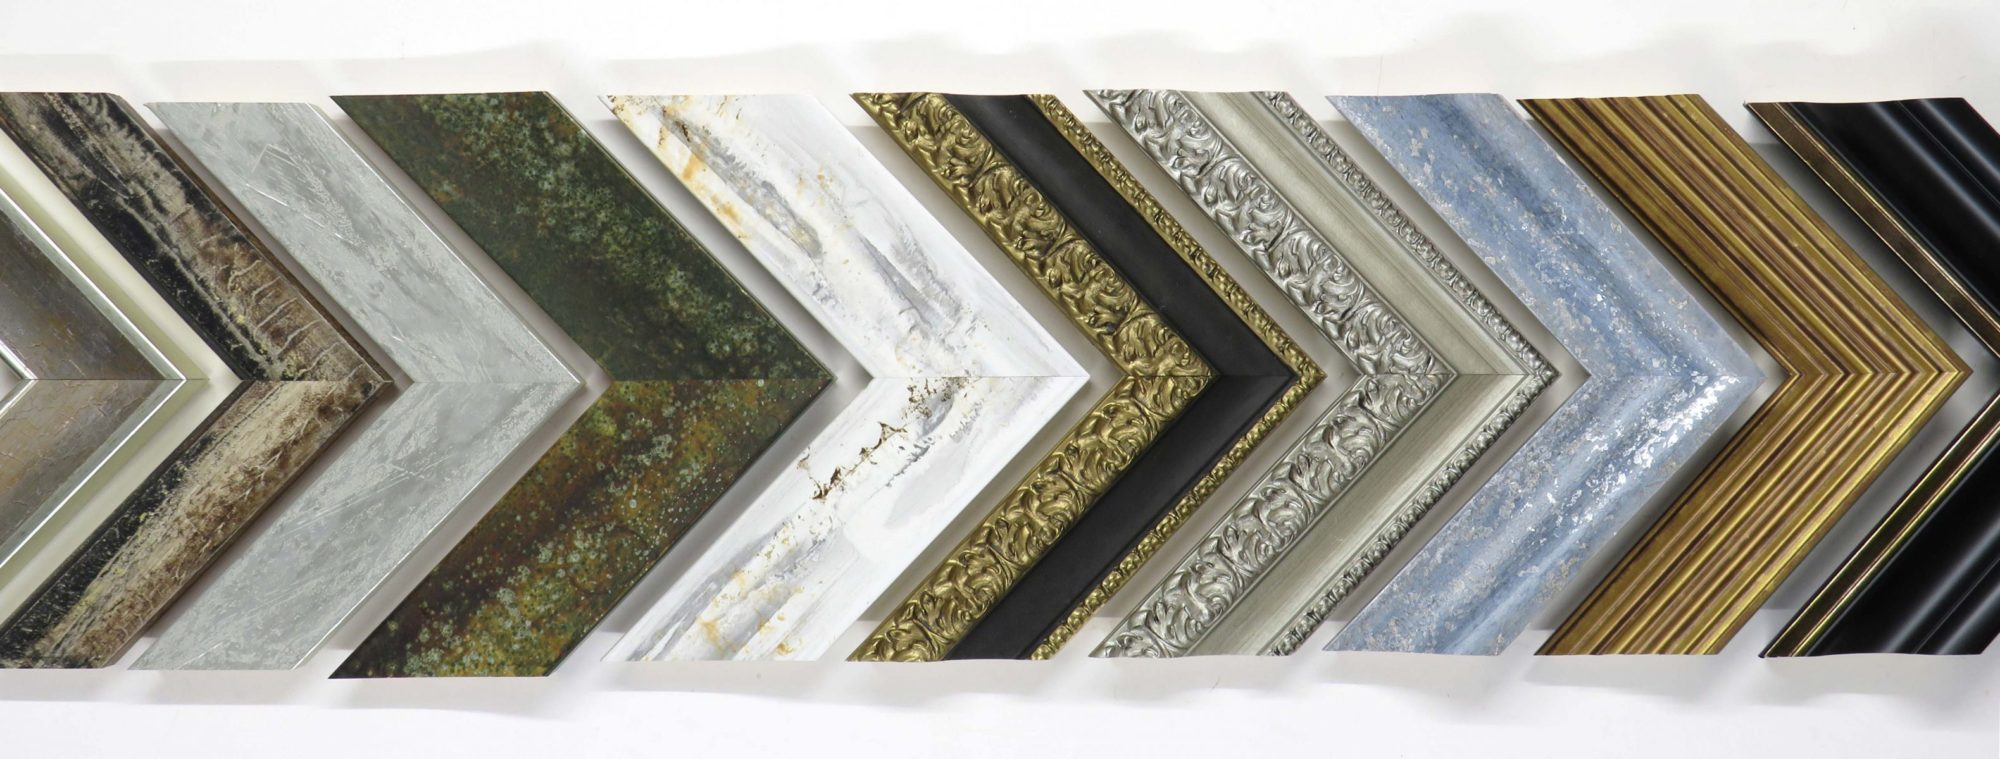 Fisherton Framing can frame mirrors in a variety of different mounts and styles.